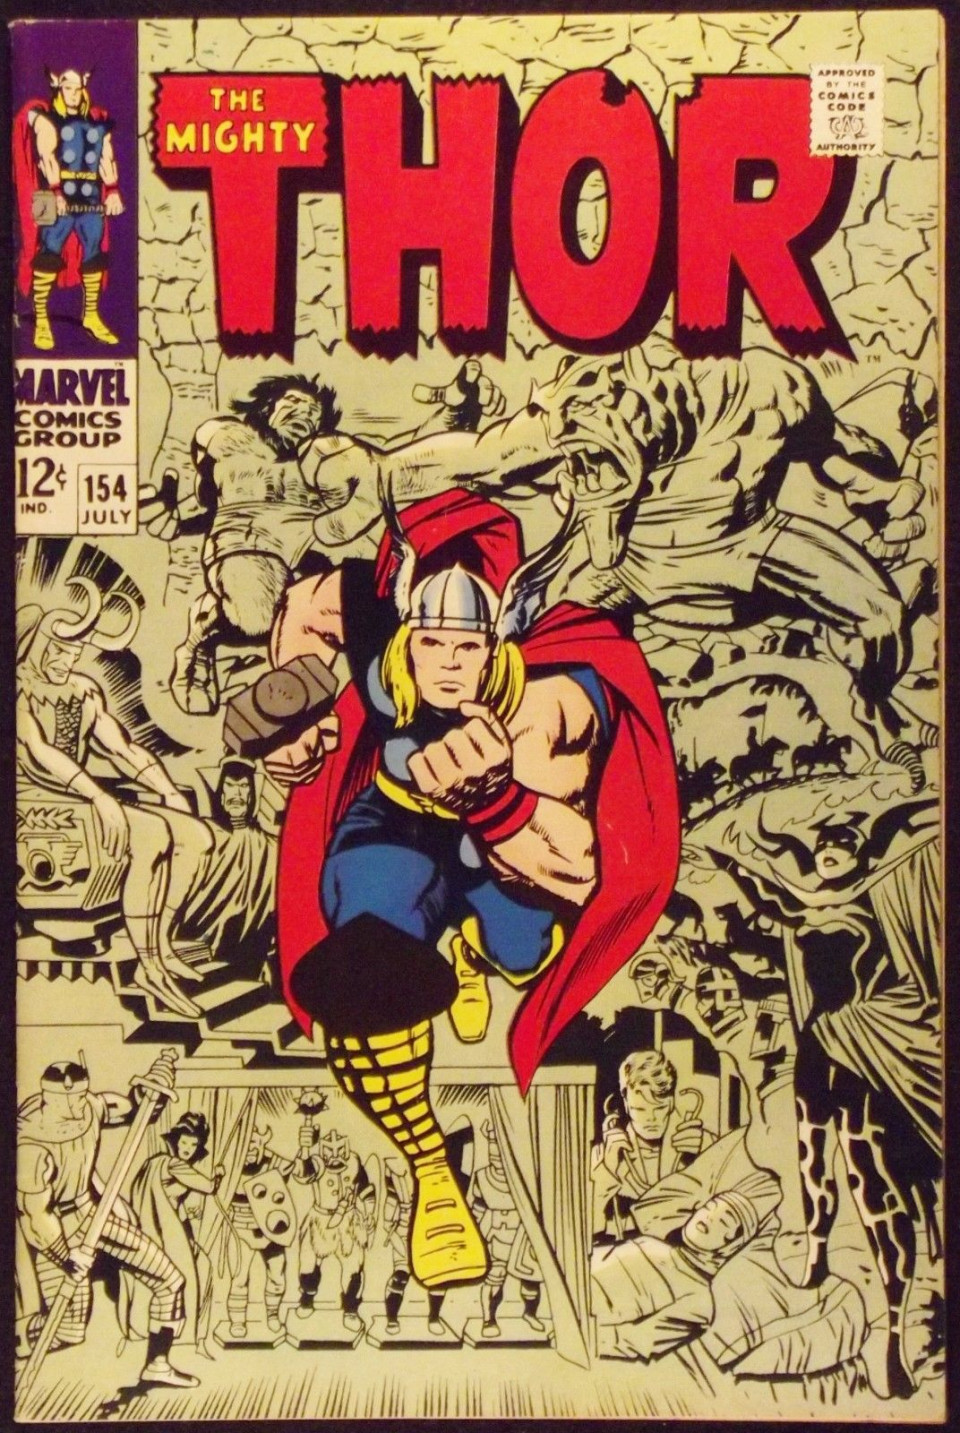 THOR 154 VF 1ST APPEARANCE MANGOD STAN LEE JACK KIRBY